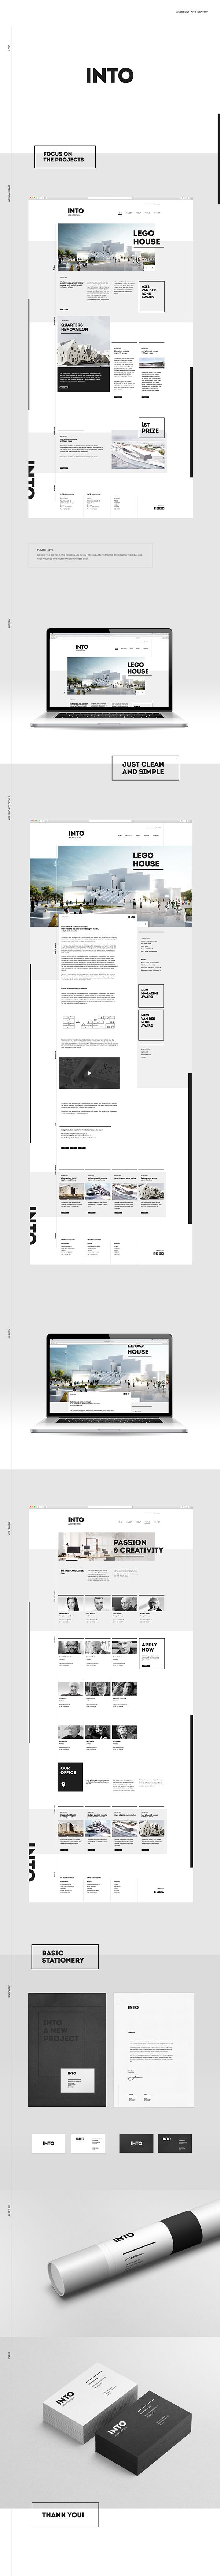 INTO | architecture office concept on Web Design Served A website should not just draw attention. The role of a website is to attract and engage the user as well as communicate your brand and raise awareness about a product or service.  We offer professional SEO services that help websites increase their organic search score drastically in order to compete for the highest rankings — even when it comes to highly competitive keywords.